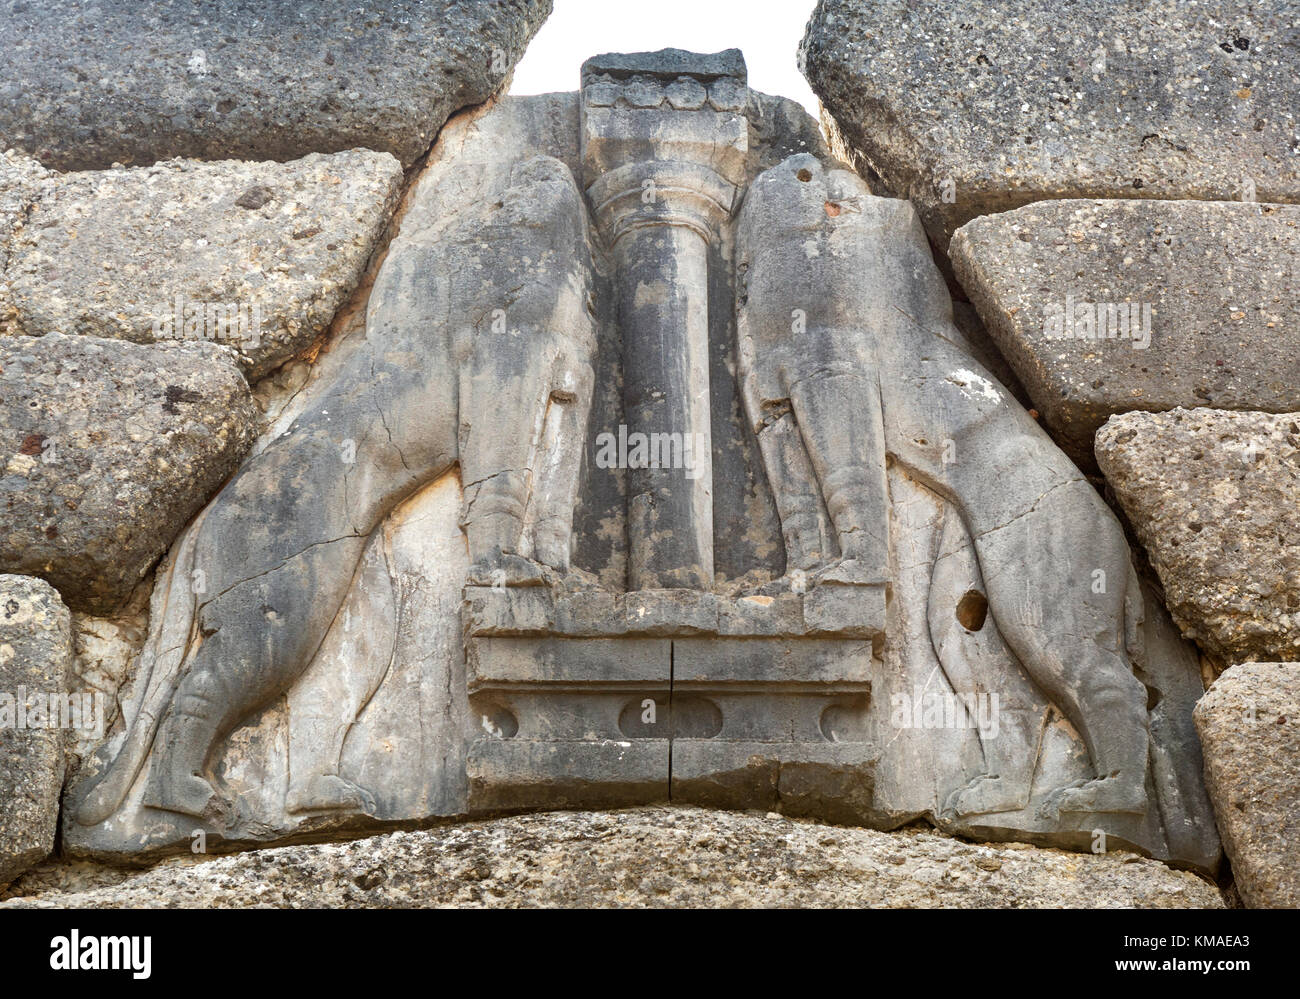 The Lion Gate at Mycenae, Mikines, Peloponnese, Greece - Stock Image